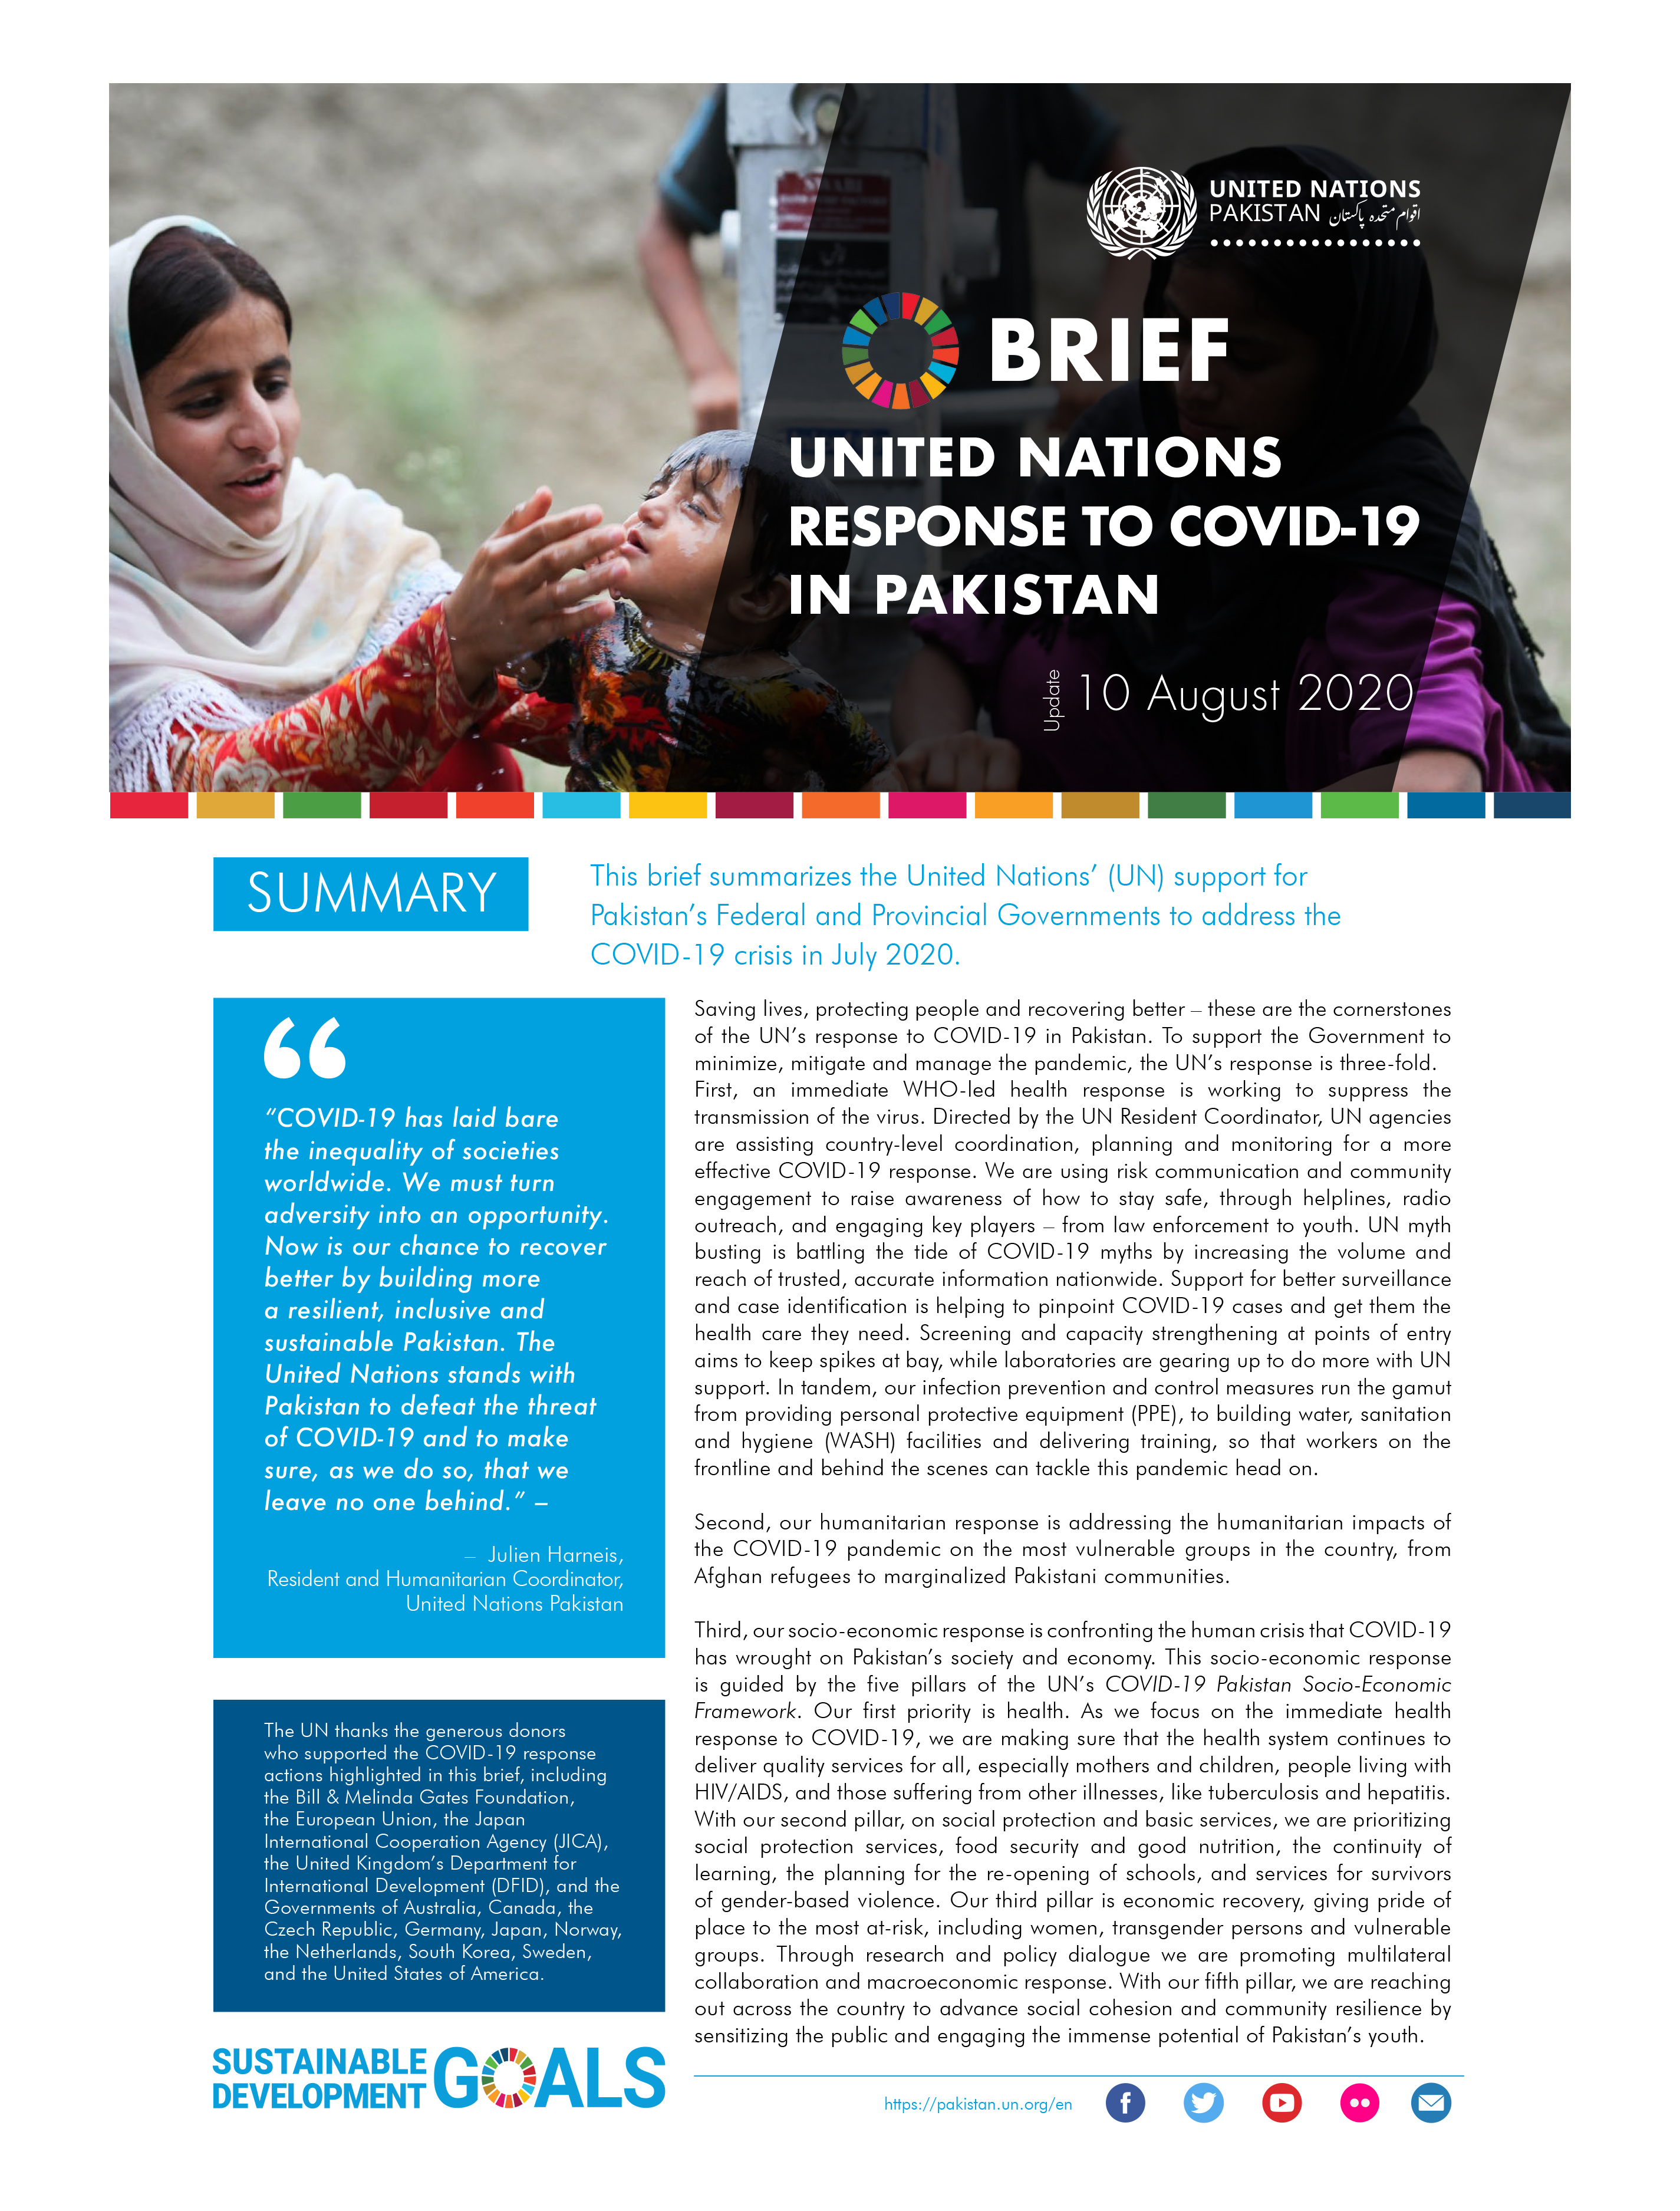 Brief: United Nations response to Covid-19 in Pakistan, August 2020